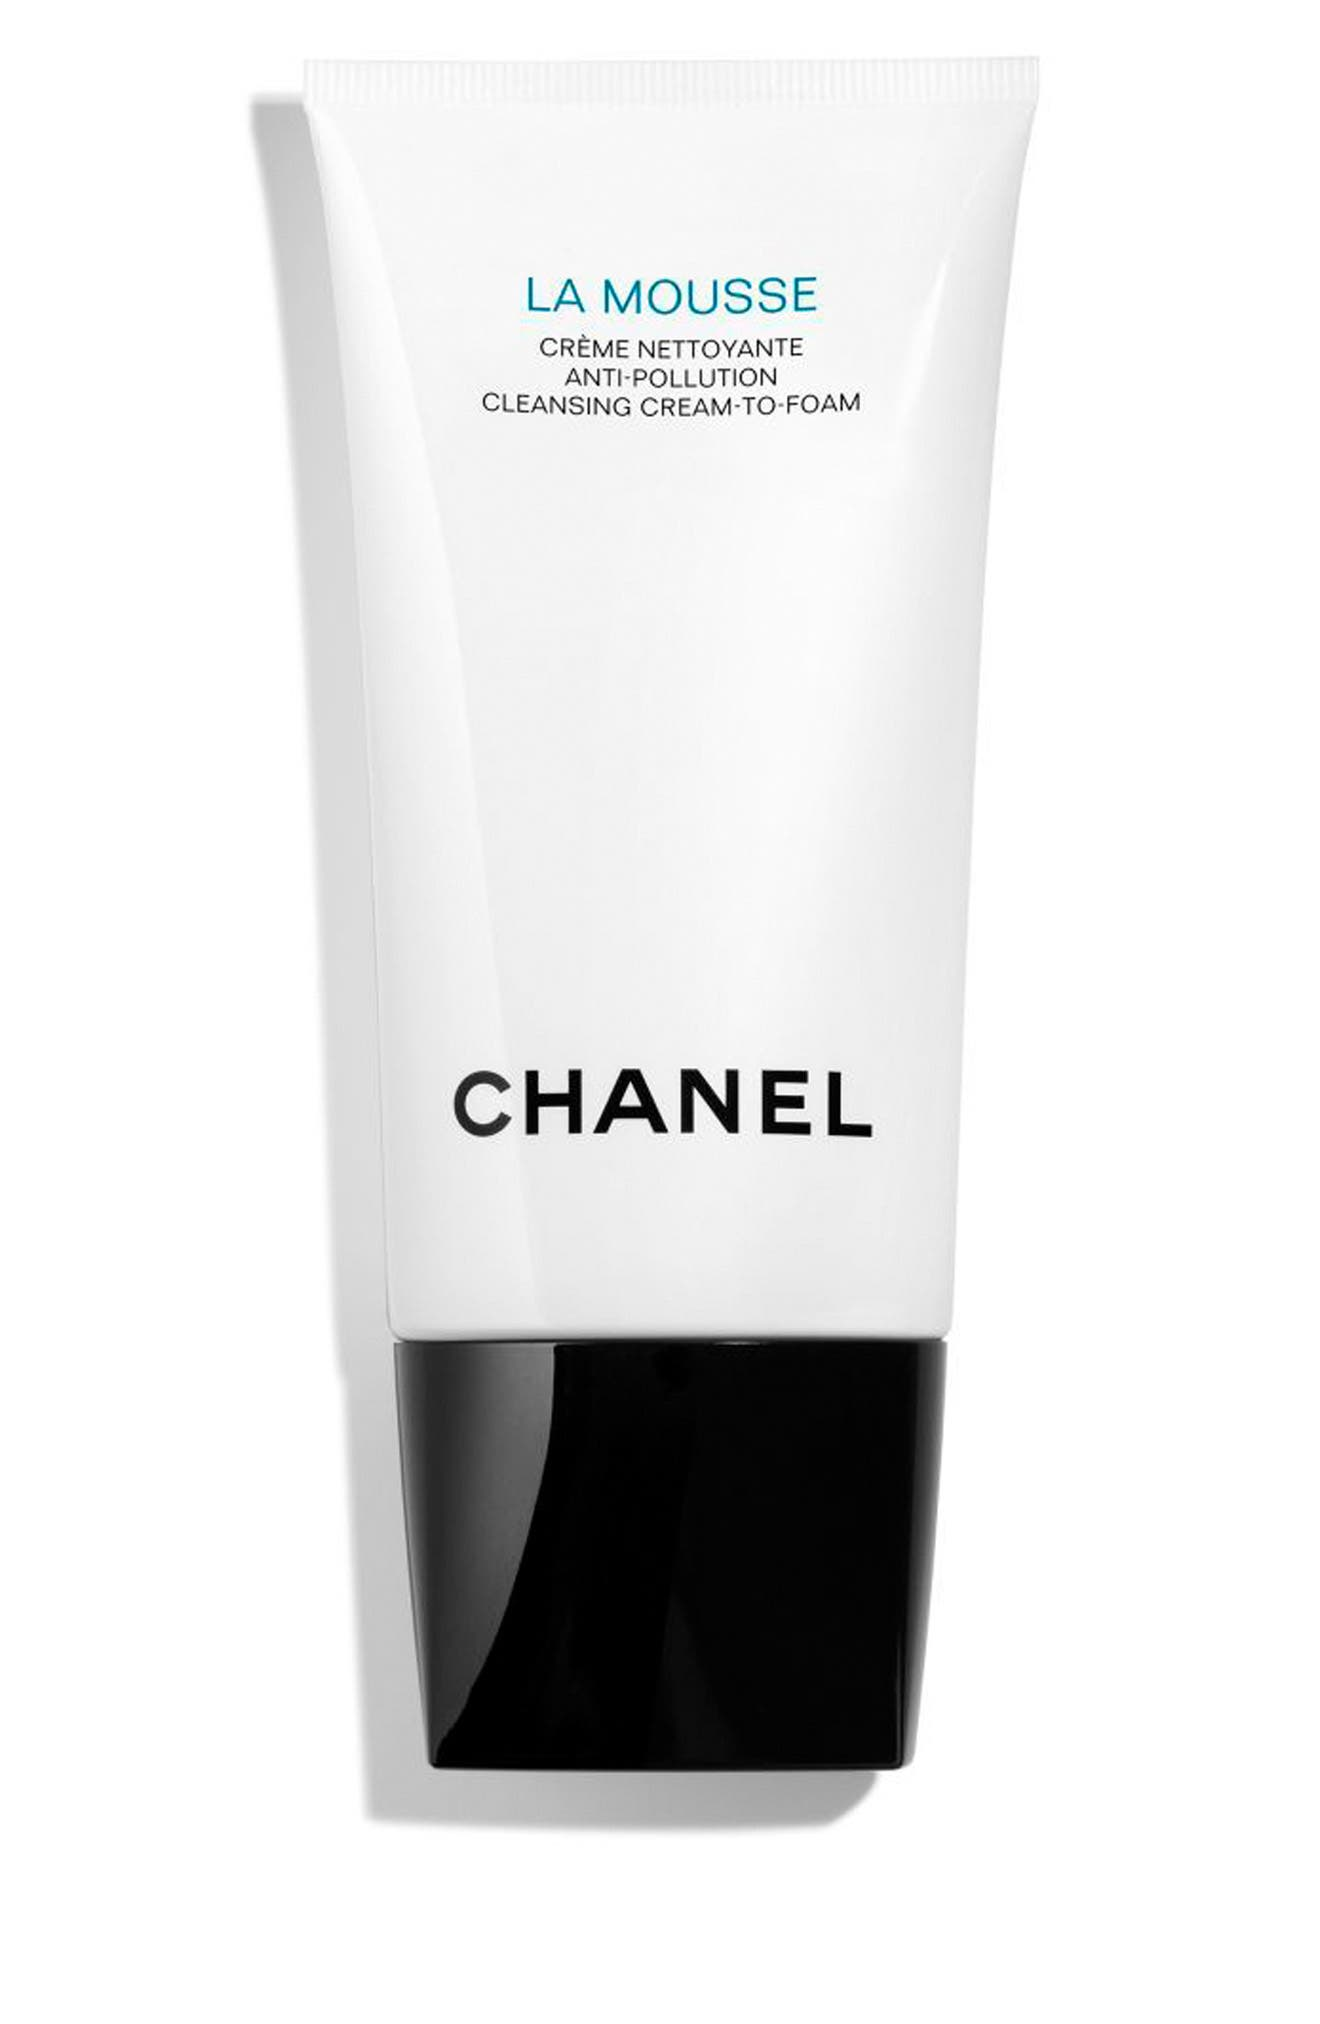 CHANEL LA MOUSSE 